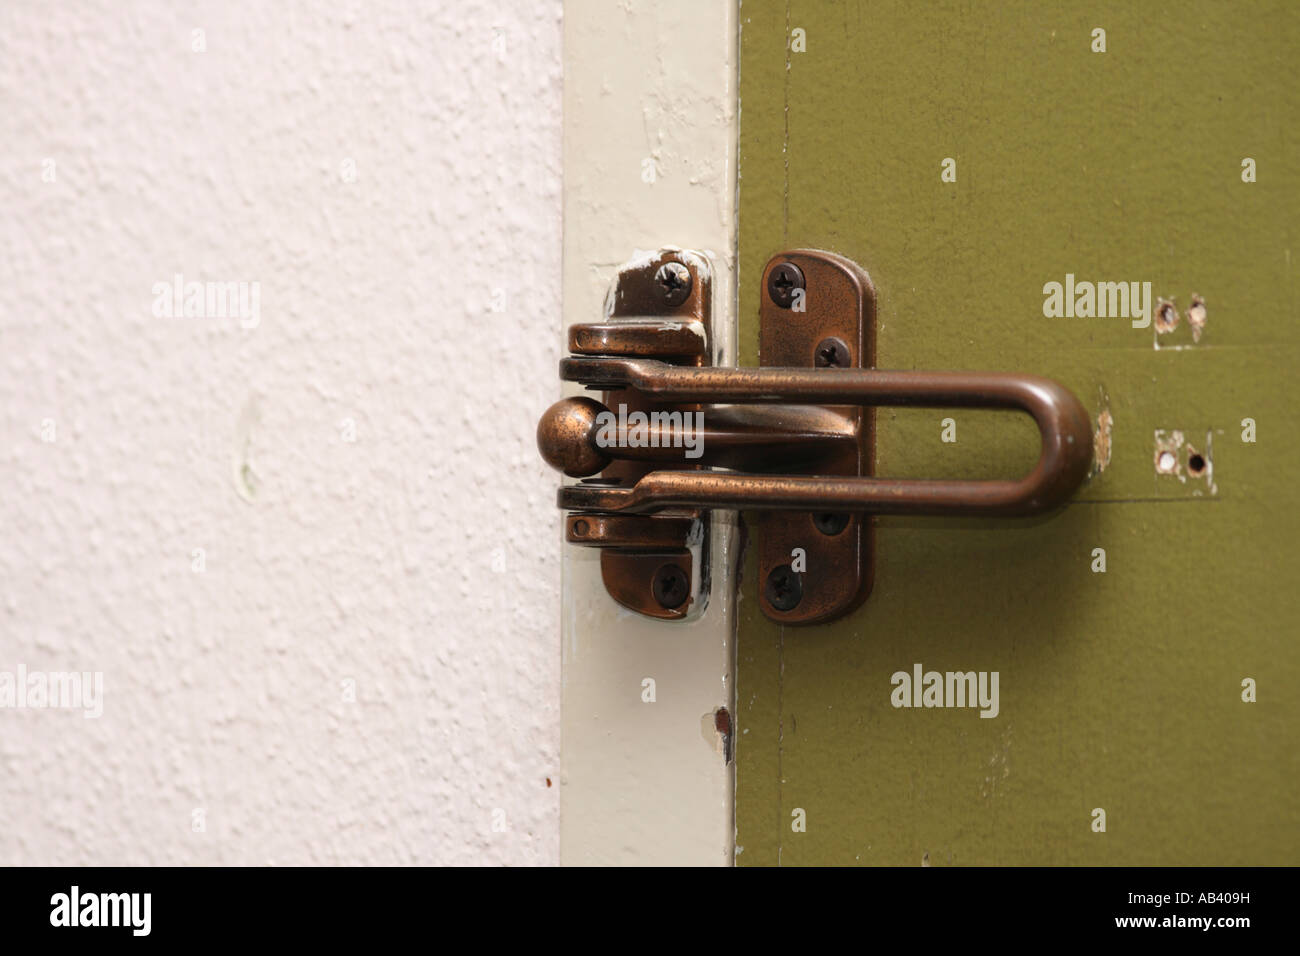 door reinforcement latch - Stock Image